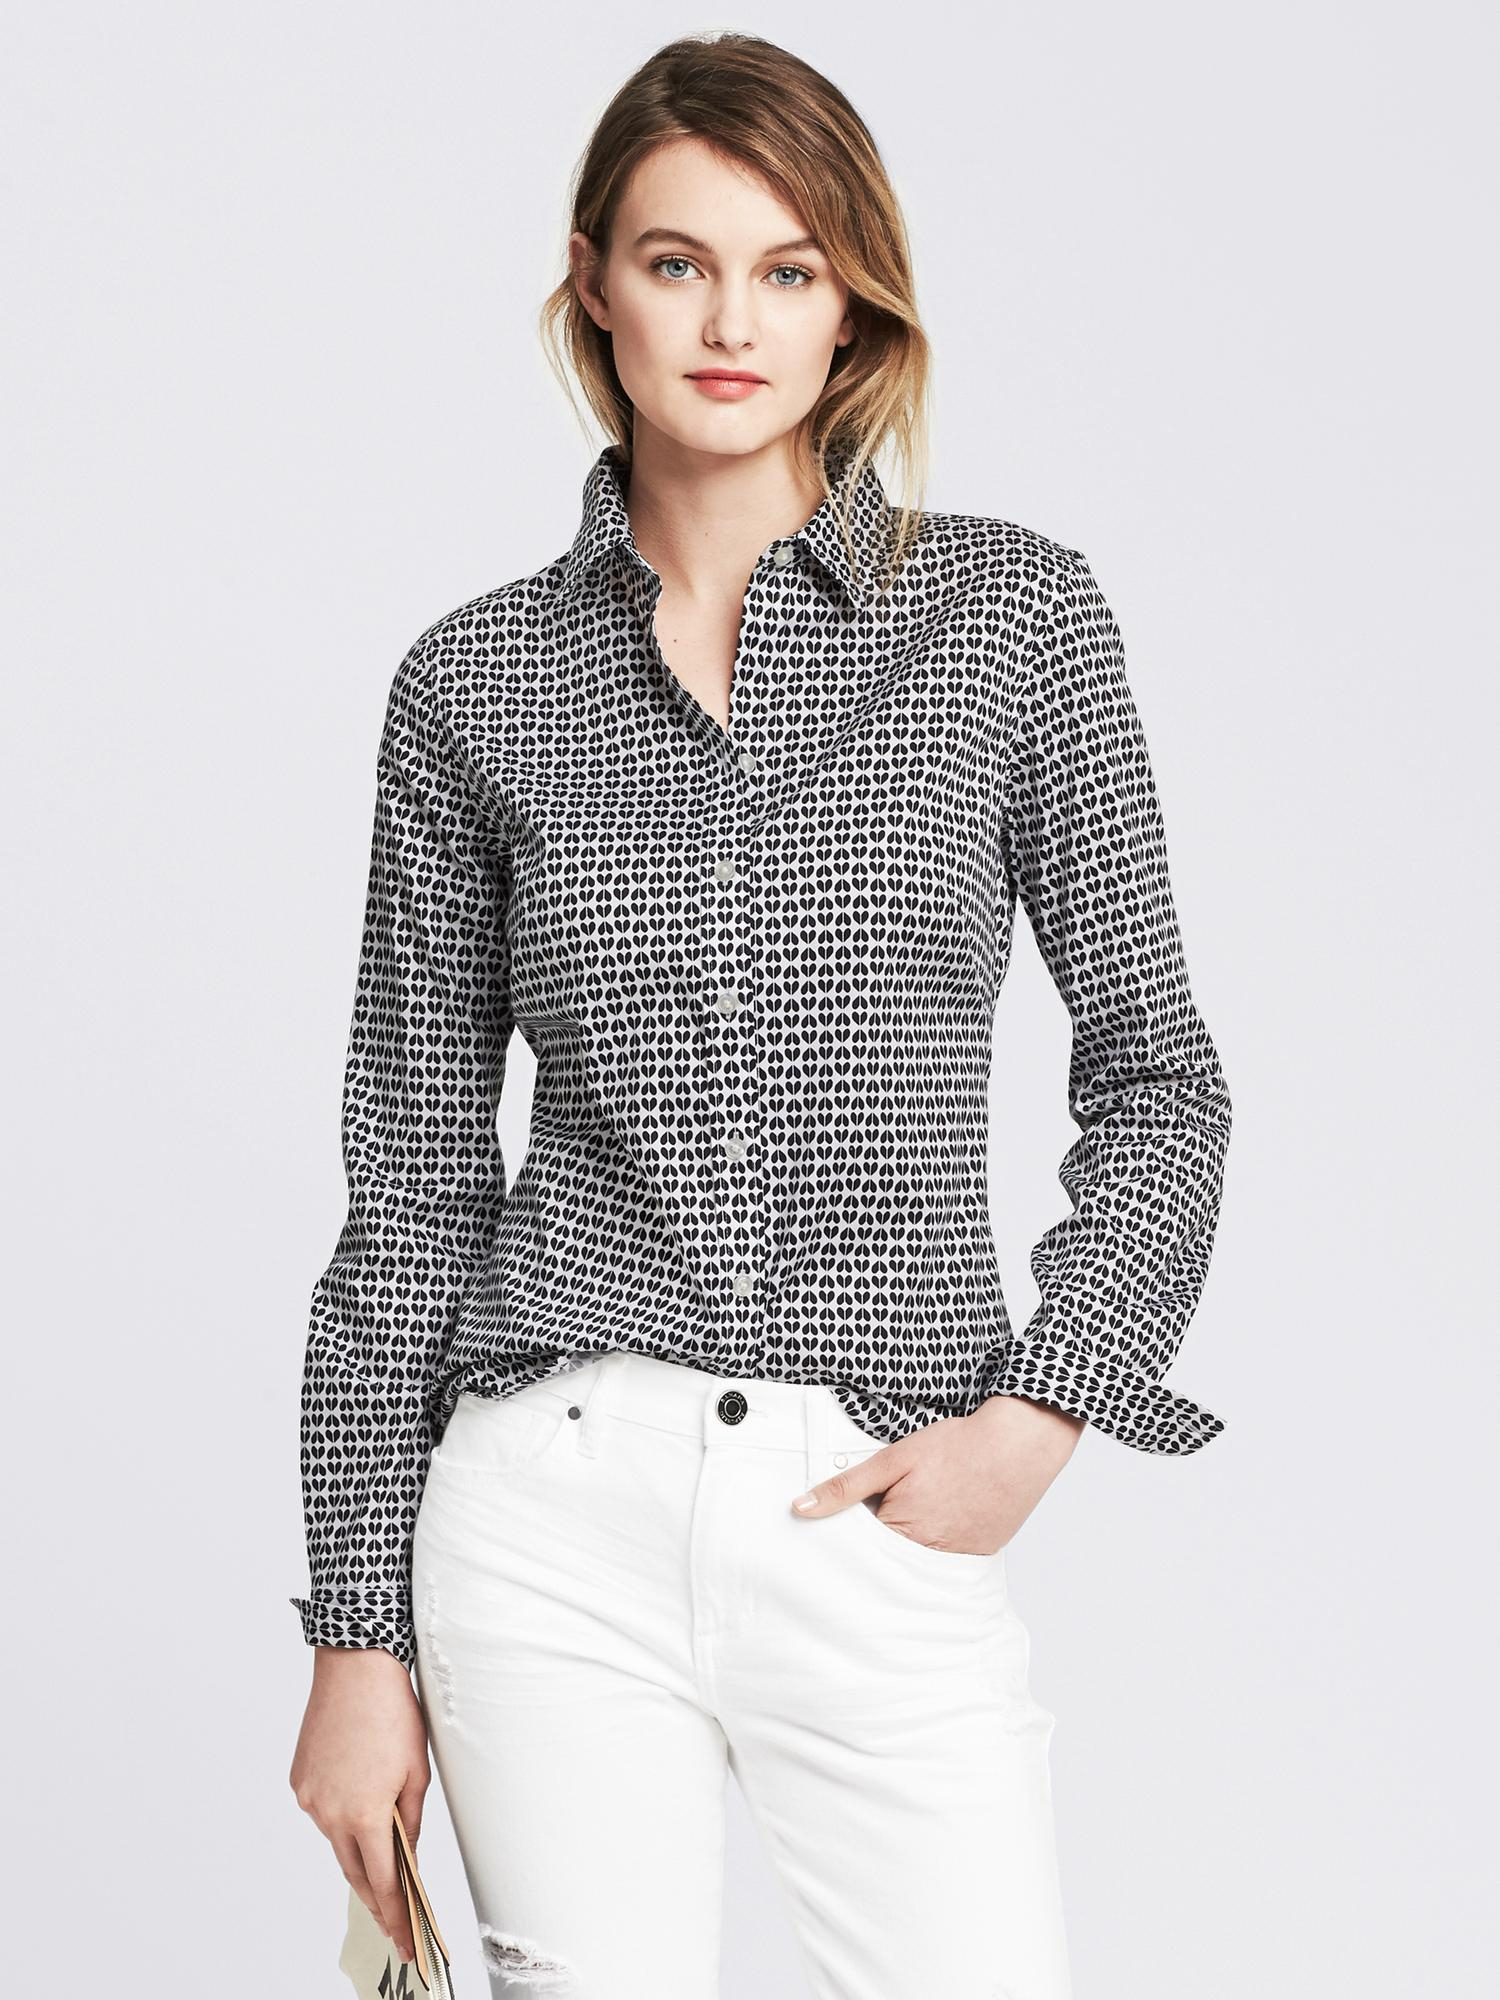 Banana republic fitted non iron heart print shirt in black white lyst - How to unwrinkle your clothes with no iron ...